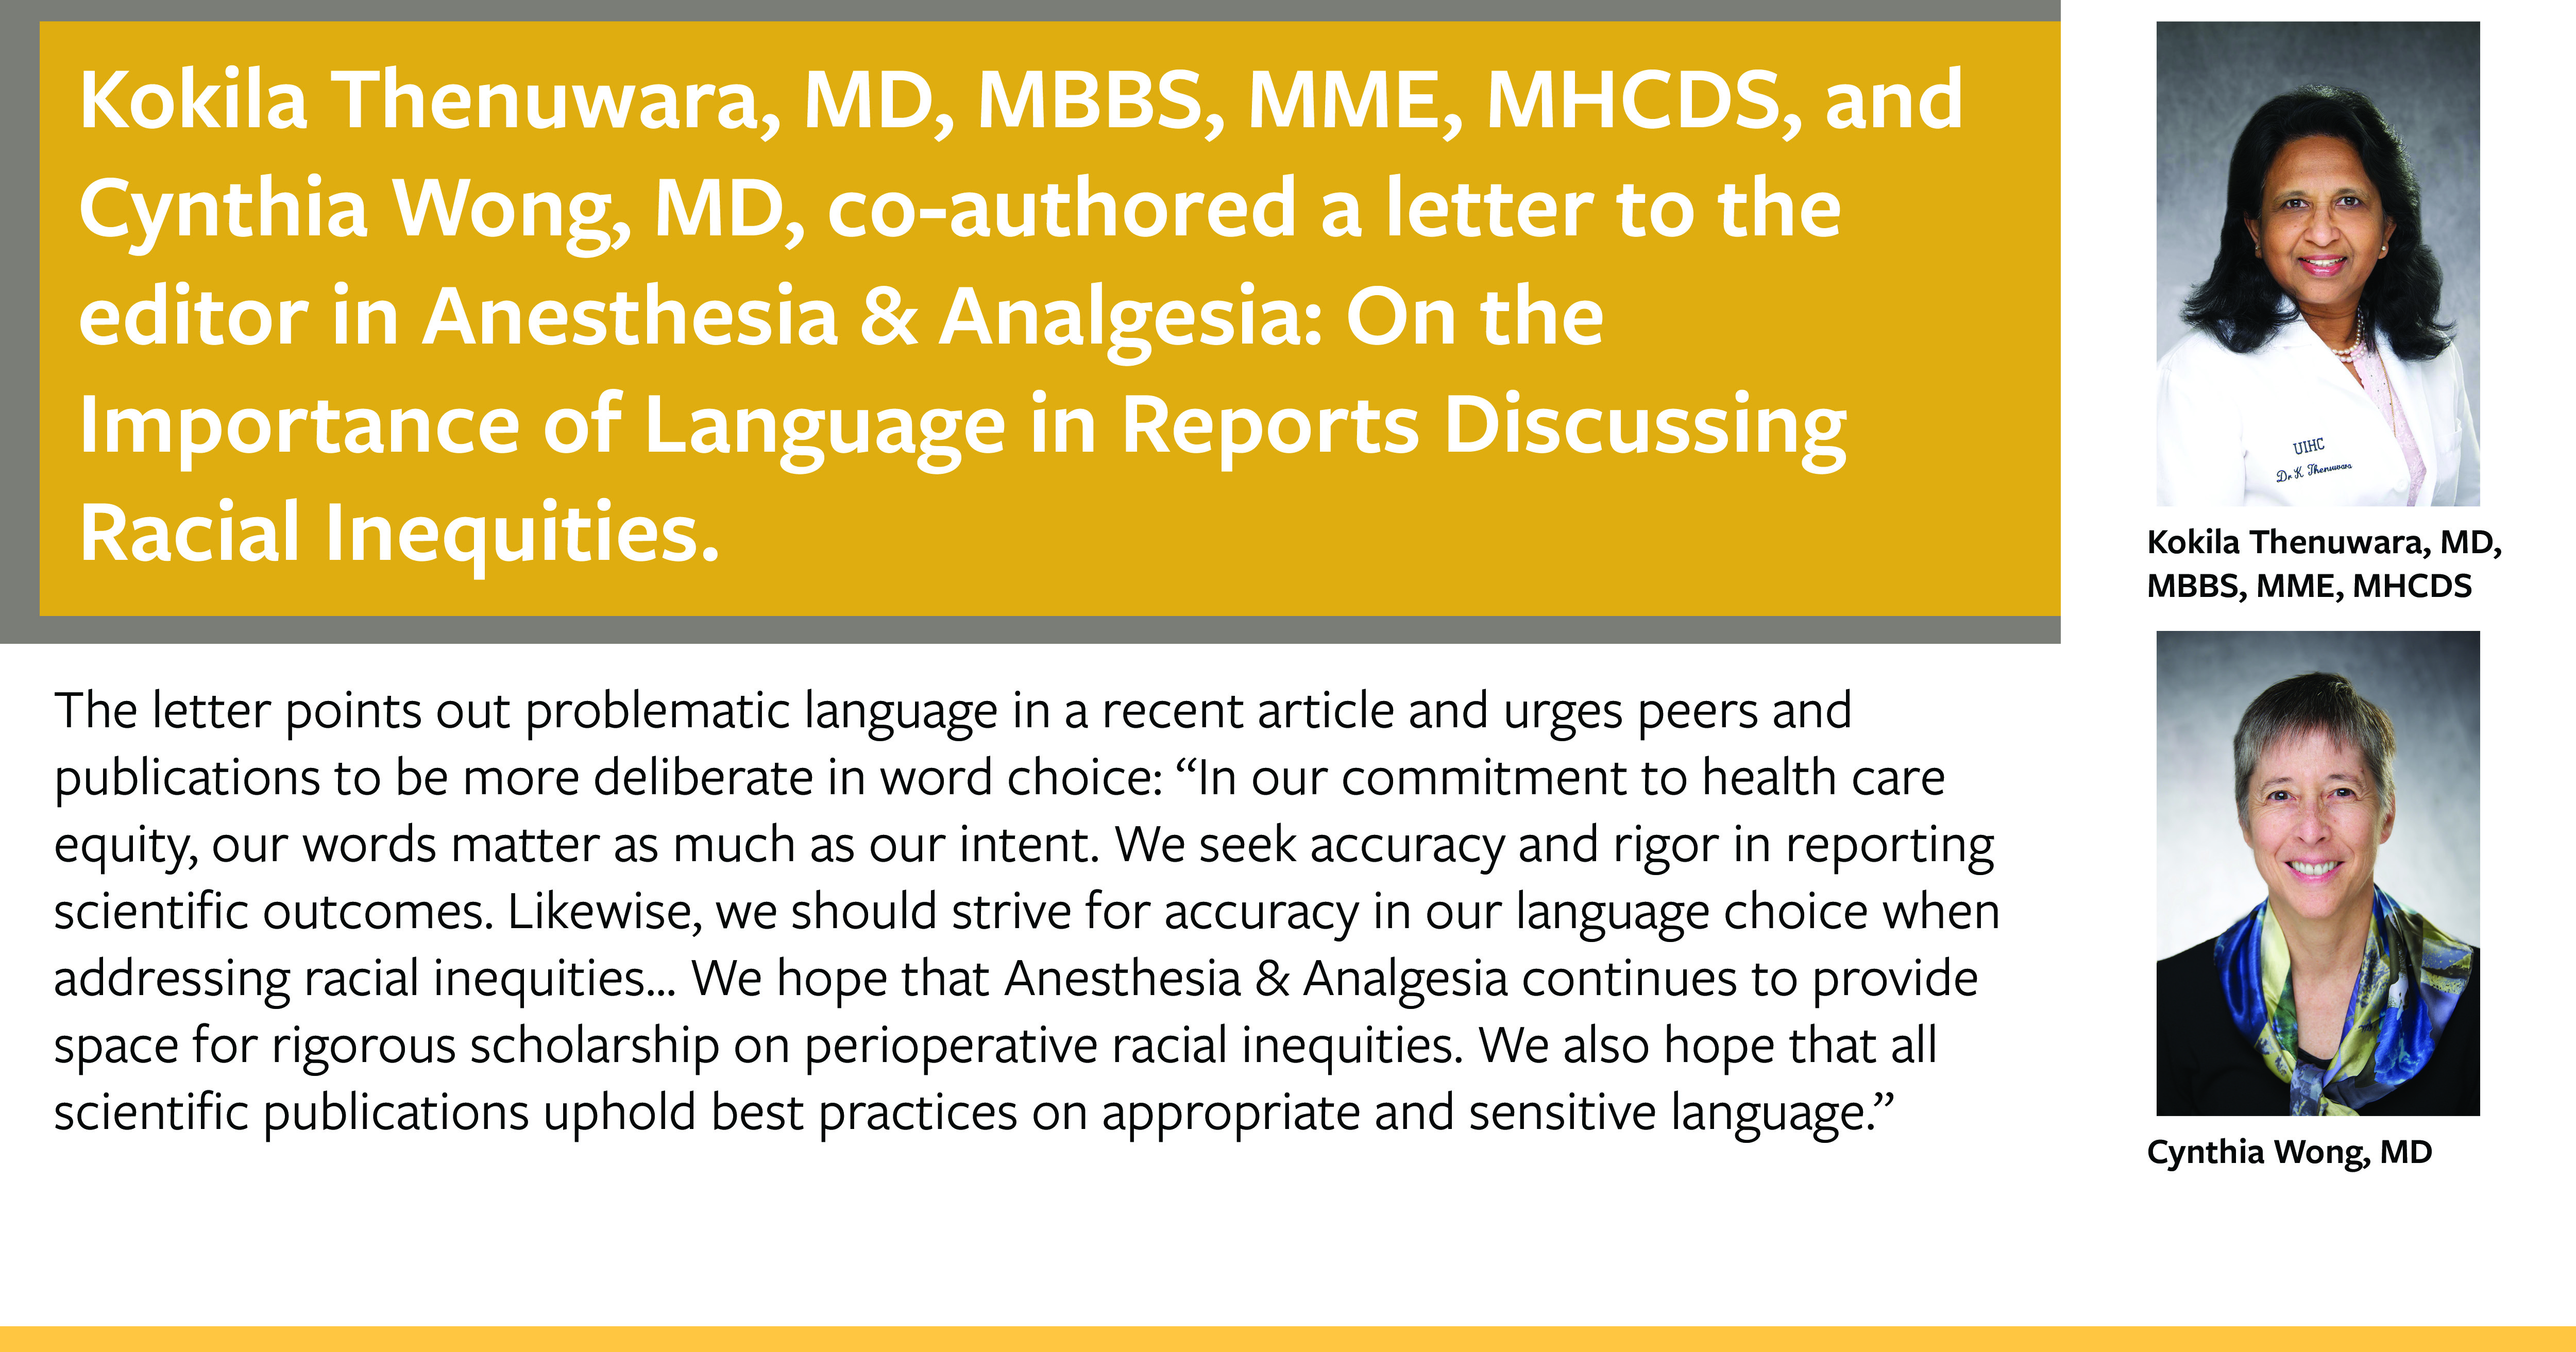 Drs. Thenuwara and Wong co-authored an editorial advocating more deliberate language choice when reporting on racial inequities in health care